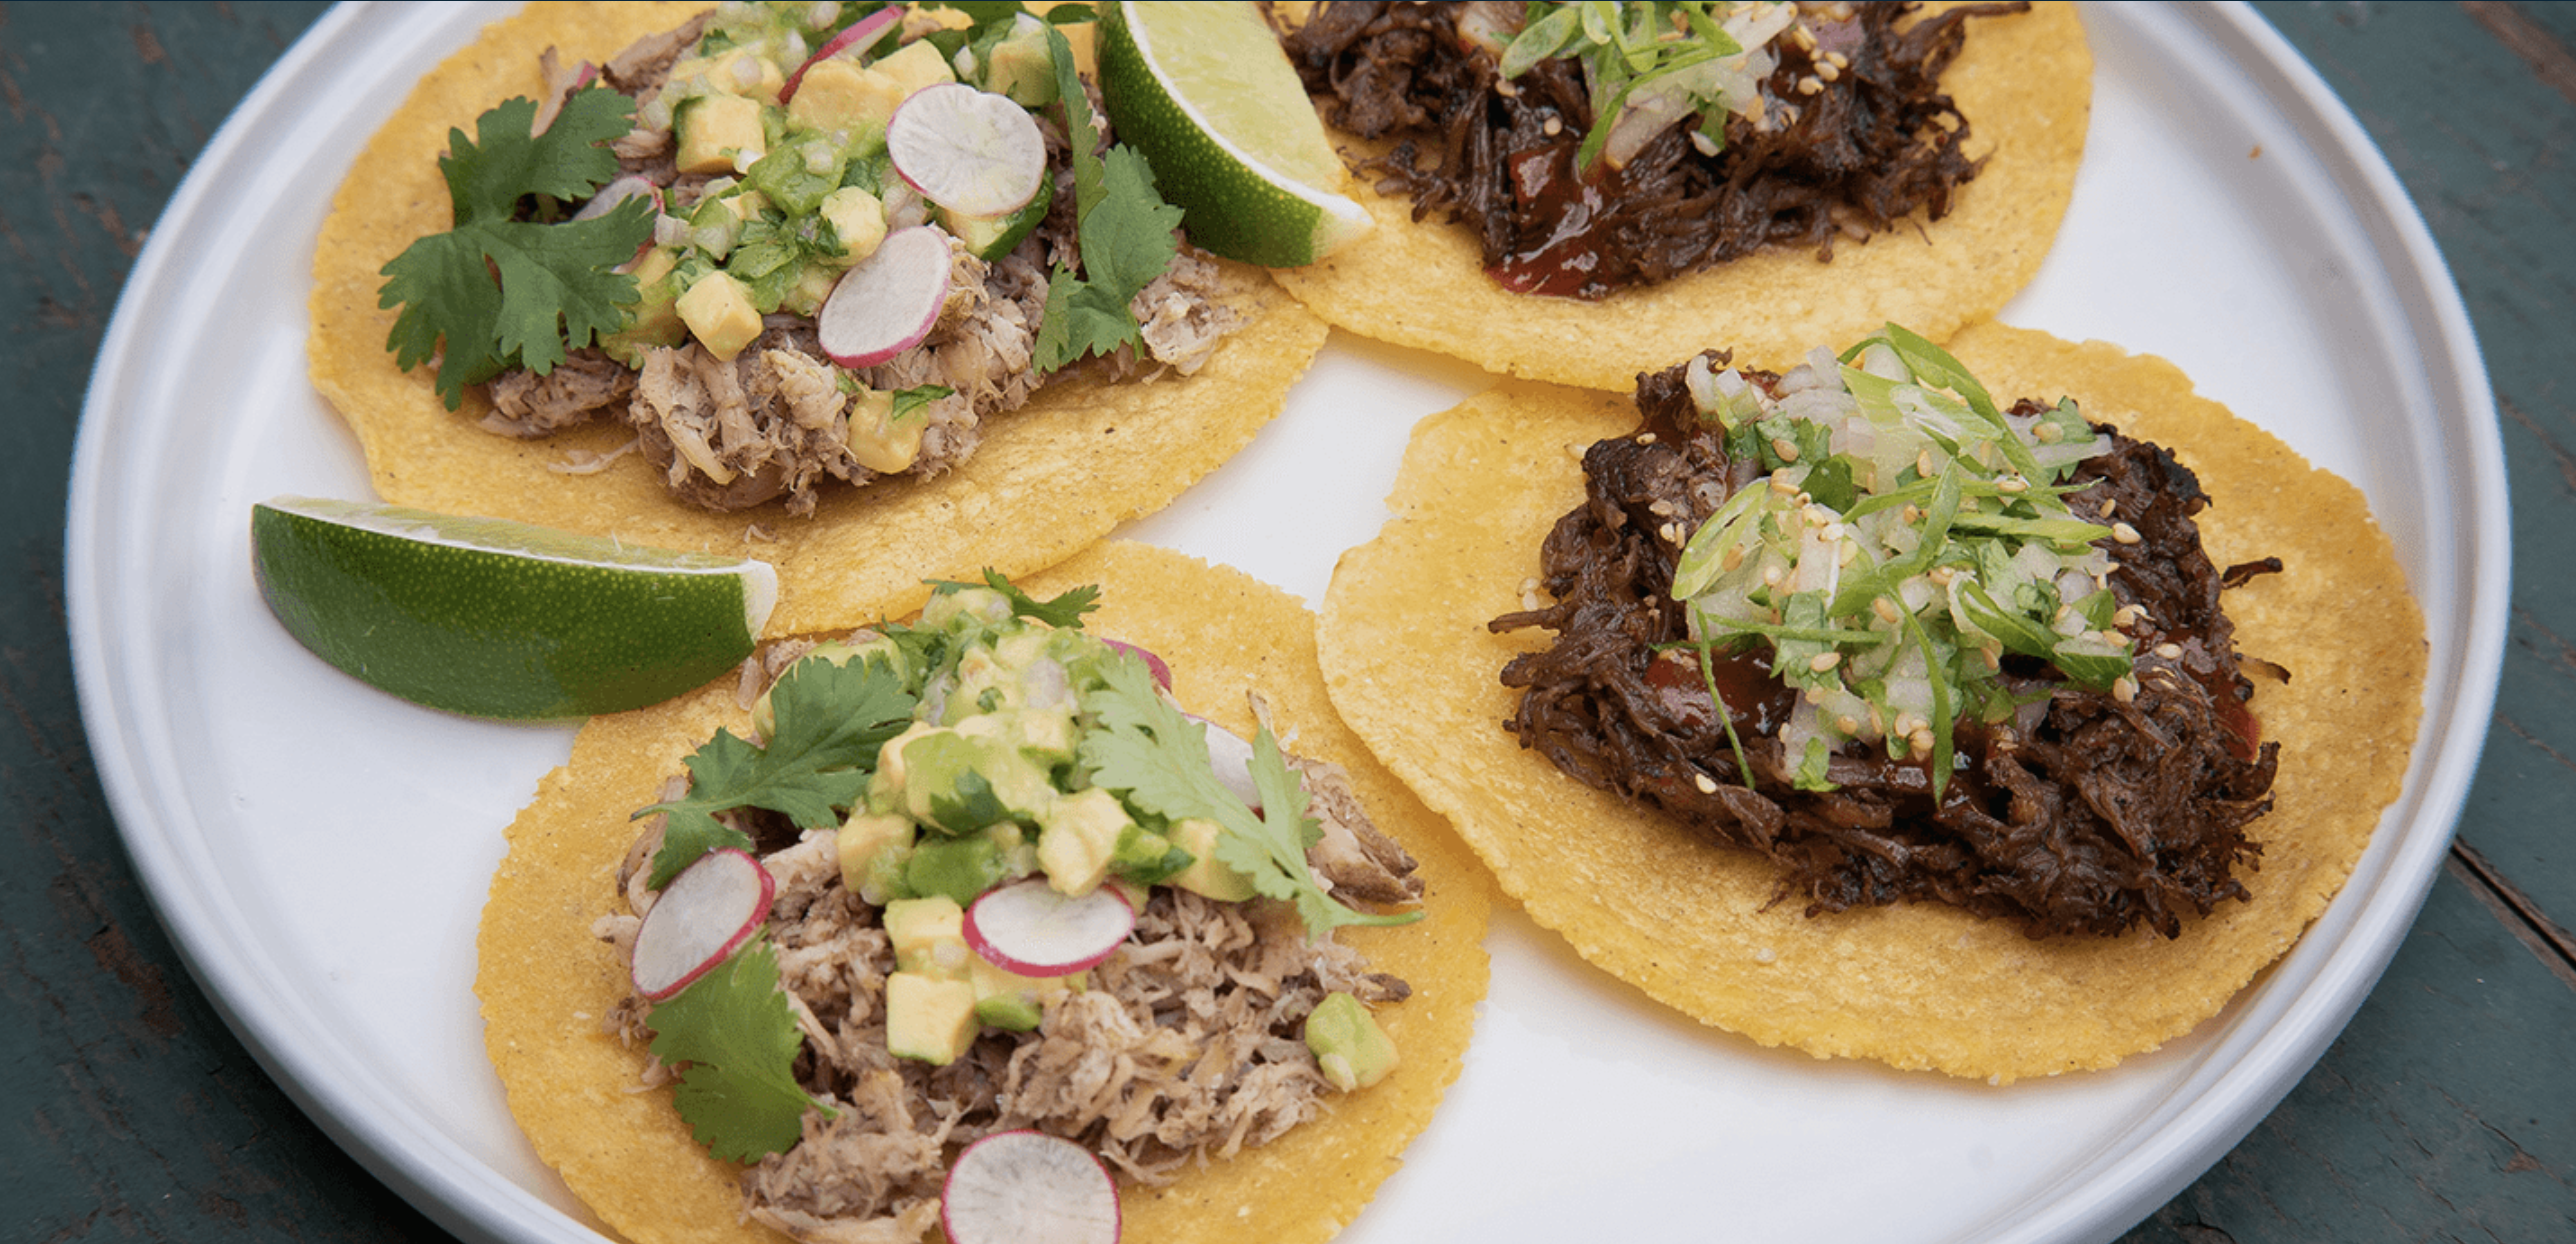 A photo of a plate containing two tacos topped with carnitas and two topped with barbacoa